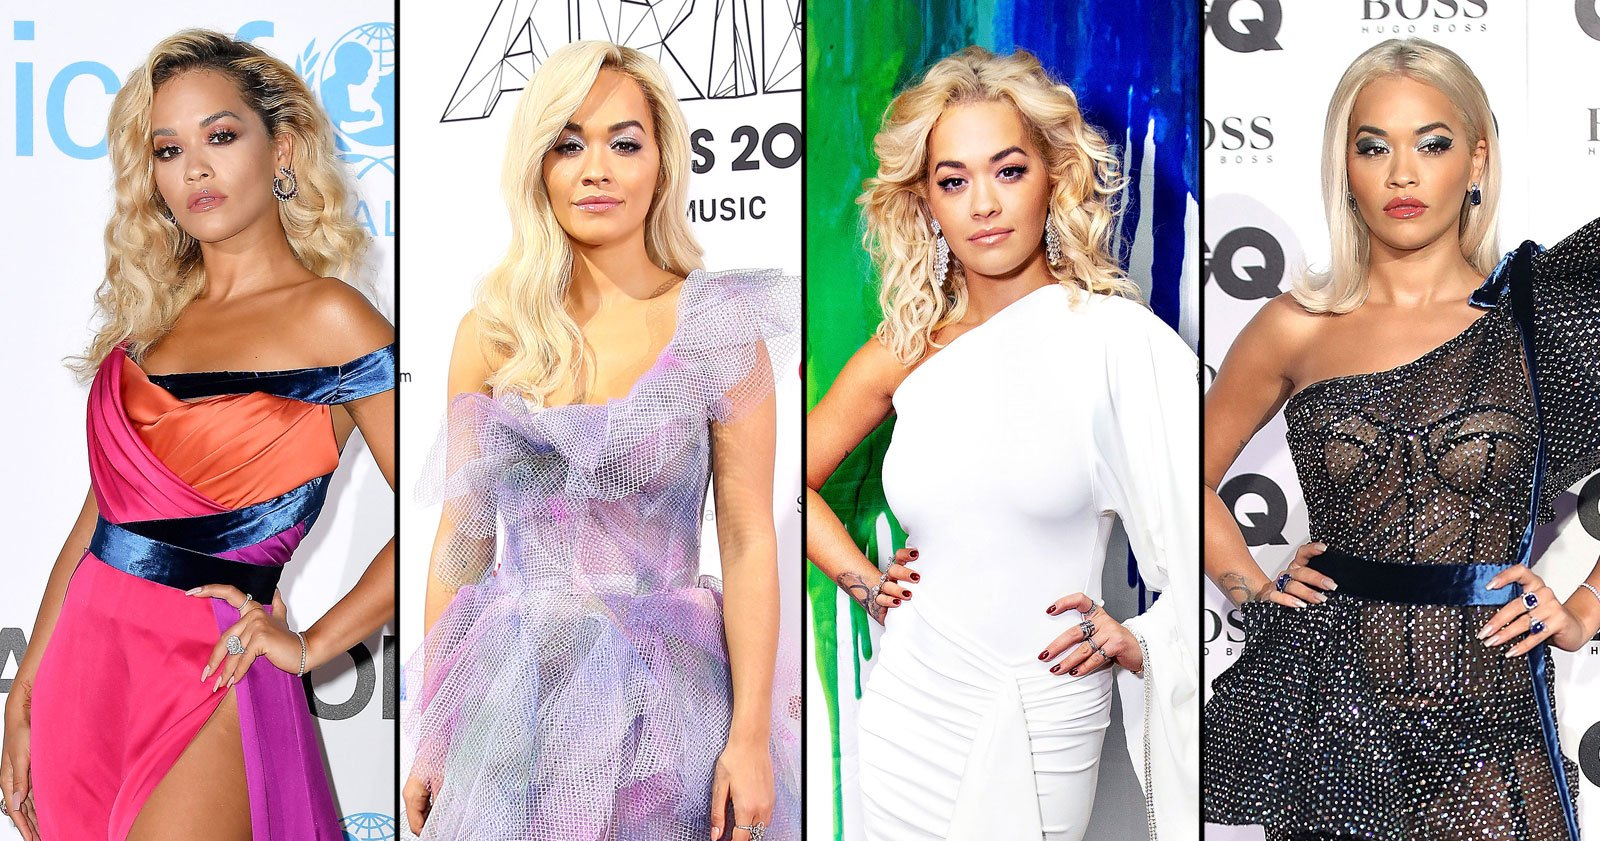 10 Times Rita Ora Absolutely Slayed the Red Carpet